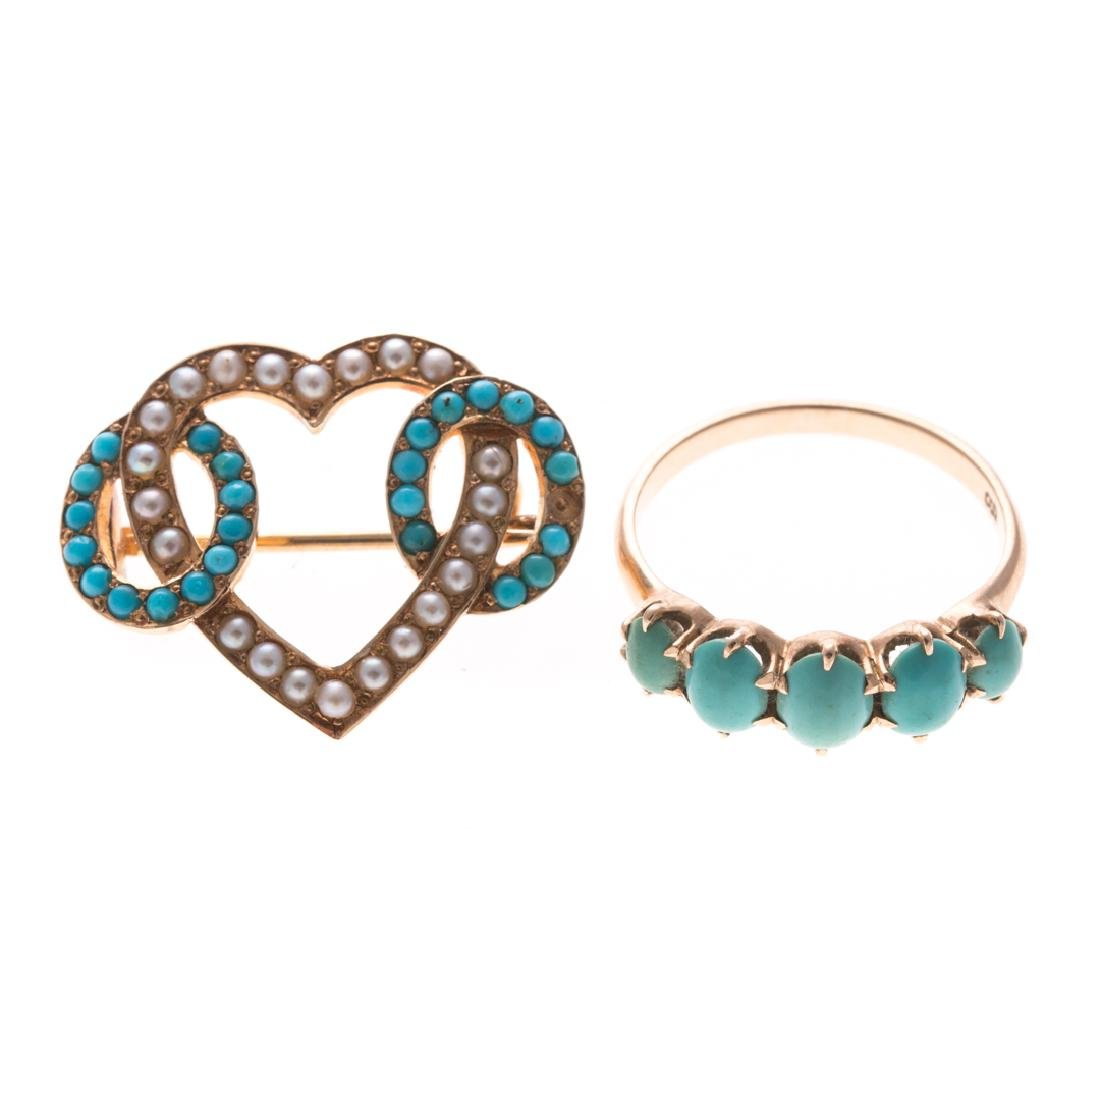 A Lady's Turquoise & Seed Pearl Pin & Ring in Gold